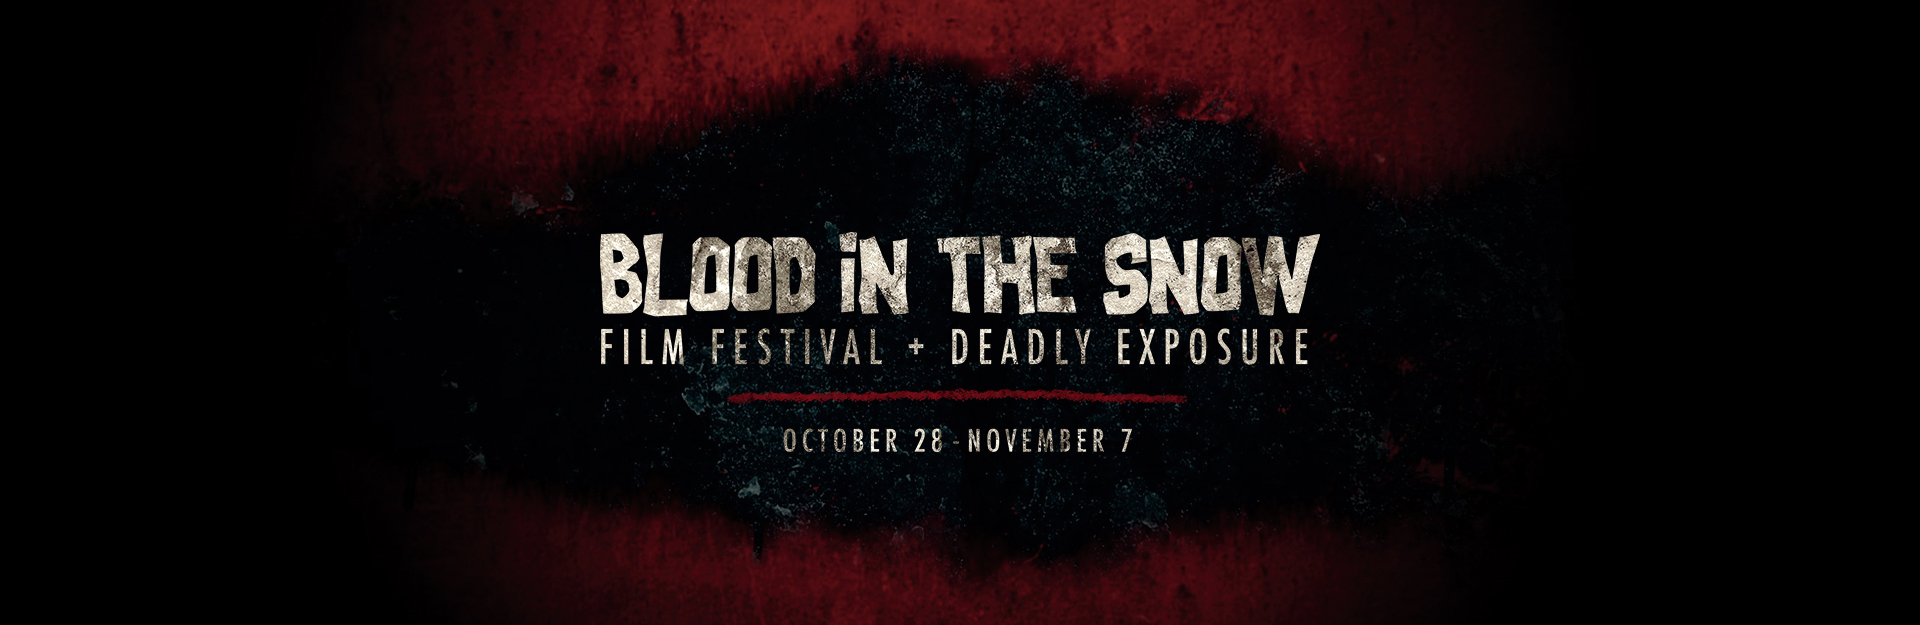 Channel Presents the 2020 Blood in the snow Festival